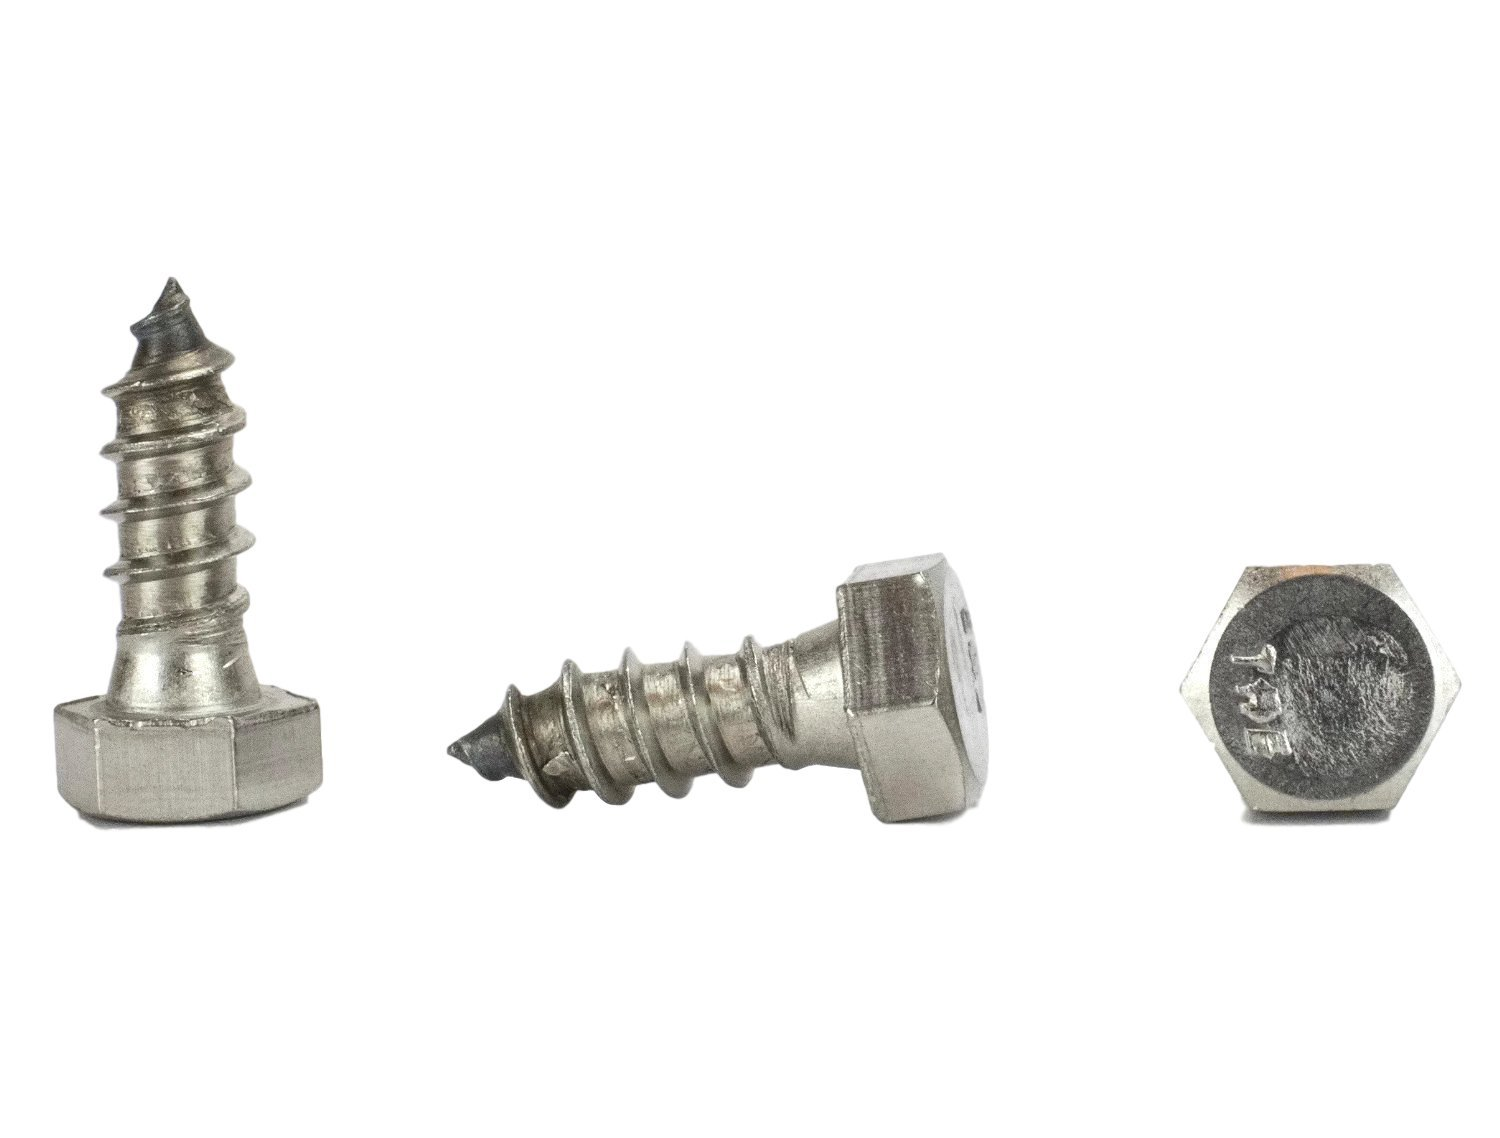 Stainless 3/8 x 1'' Hex Lag Screw (1'' To 5'' Lengths Available in Listing), 18-8 Stainless Steel, 25 pieces (3/8 x 1'')